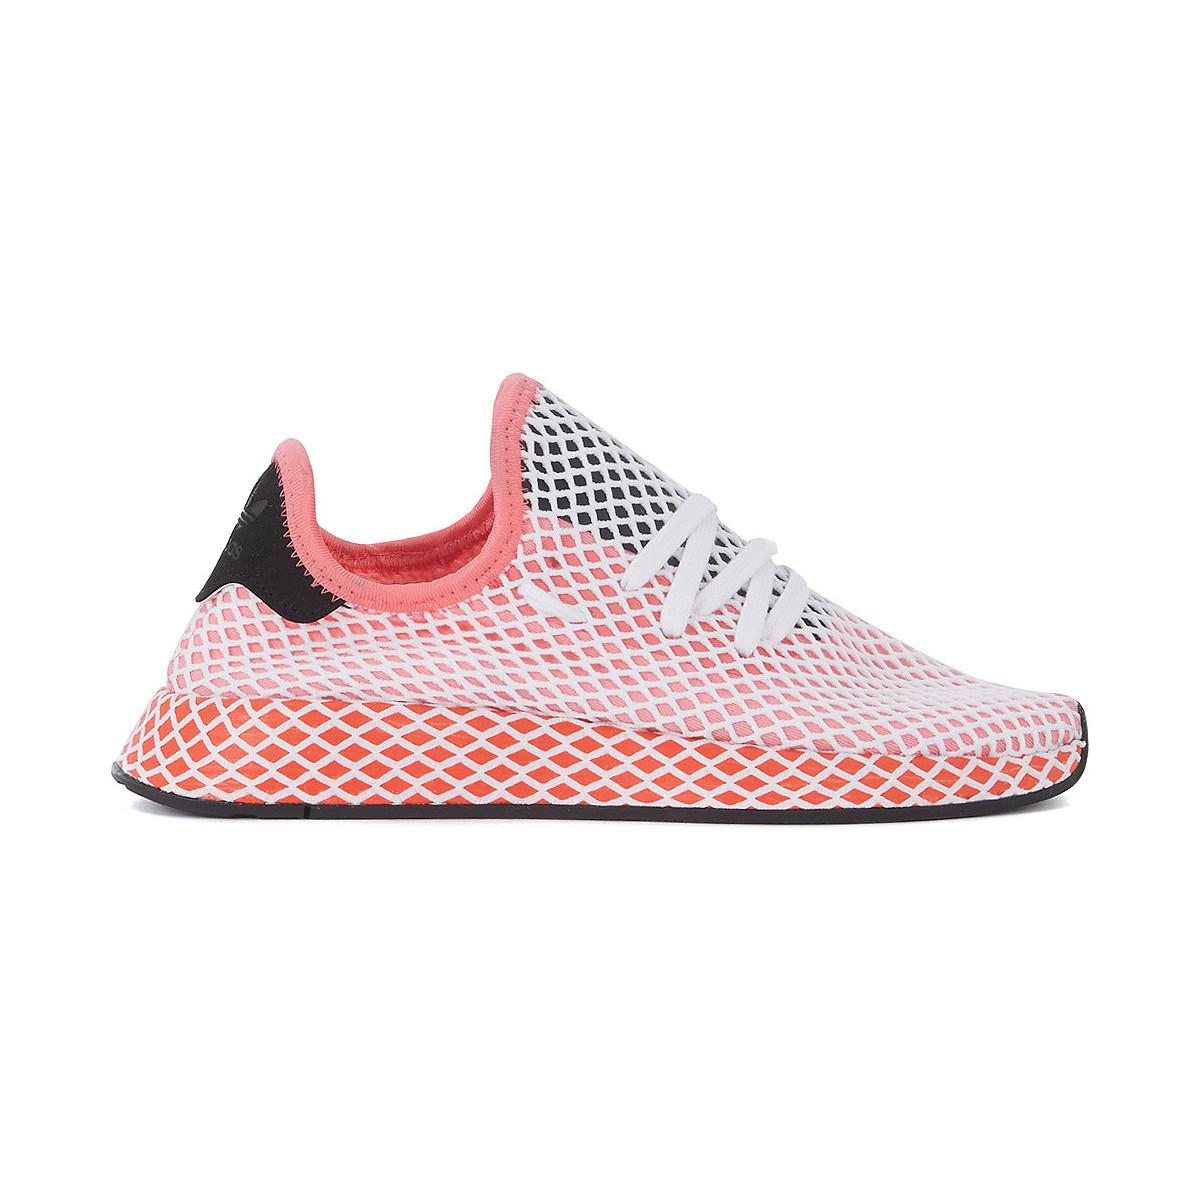 adidas. Deerupt Pink White And Red Mesh Trainer Women\u0027s Shoes ...